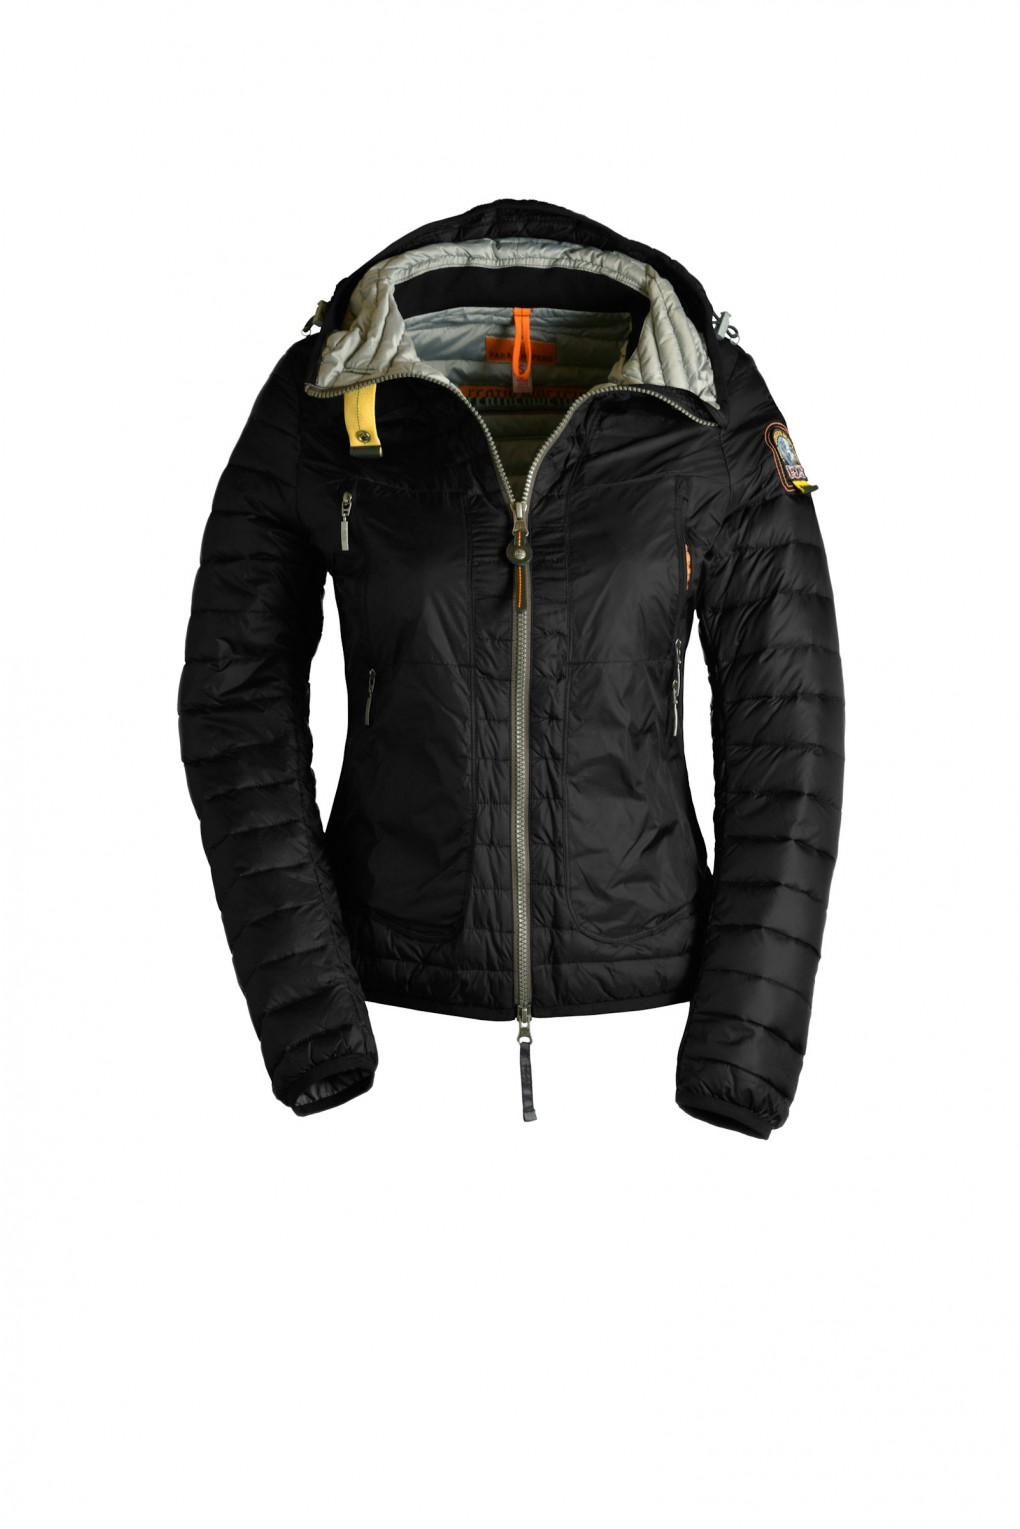 parajumpers VERONICA woman outerwear Black